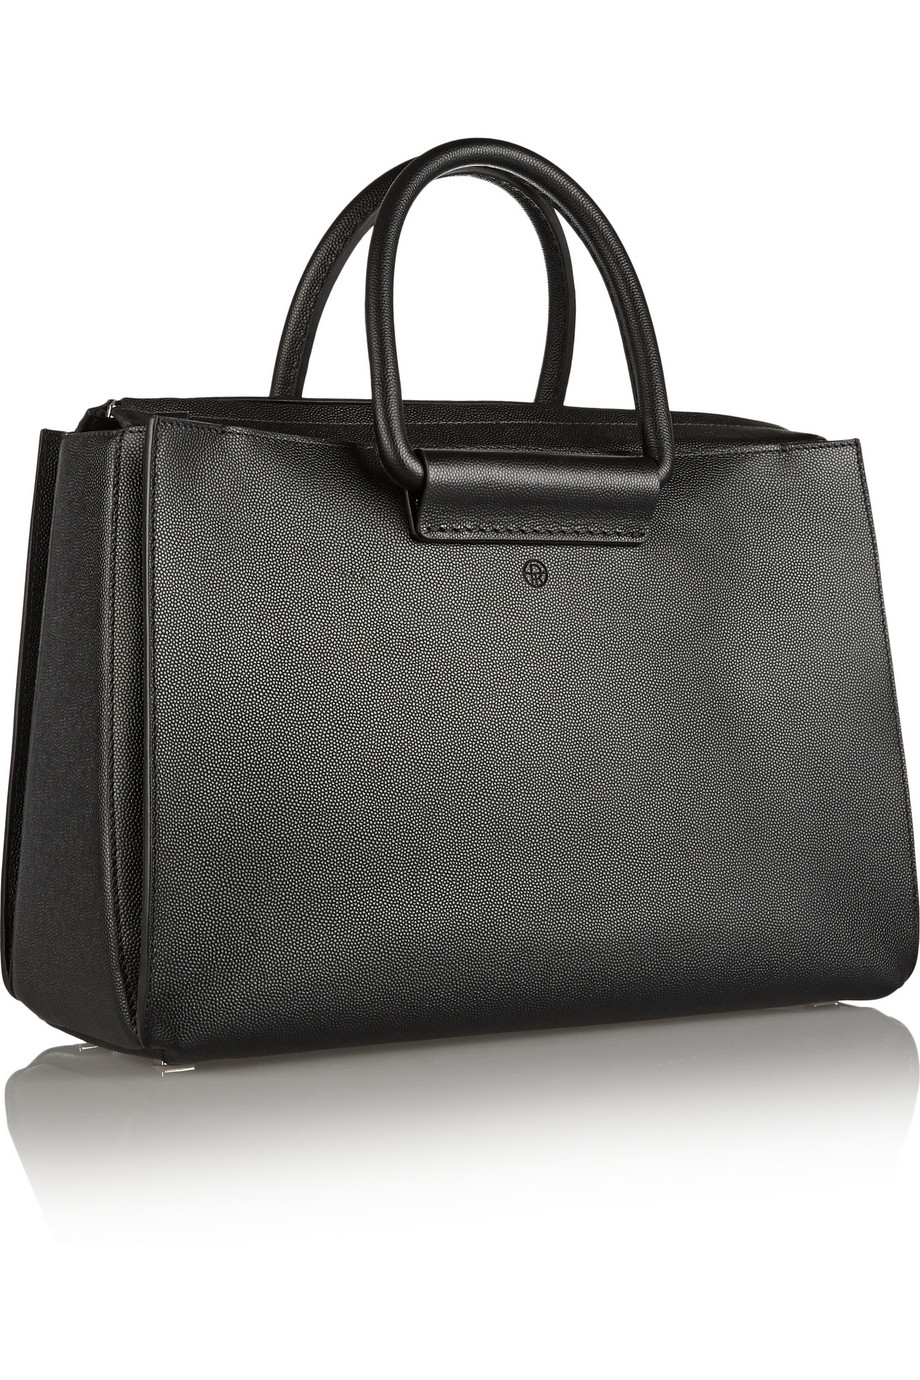 The Row Classic 5 Pebbled Leather Tote In Black Lyst